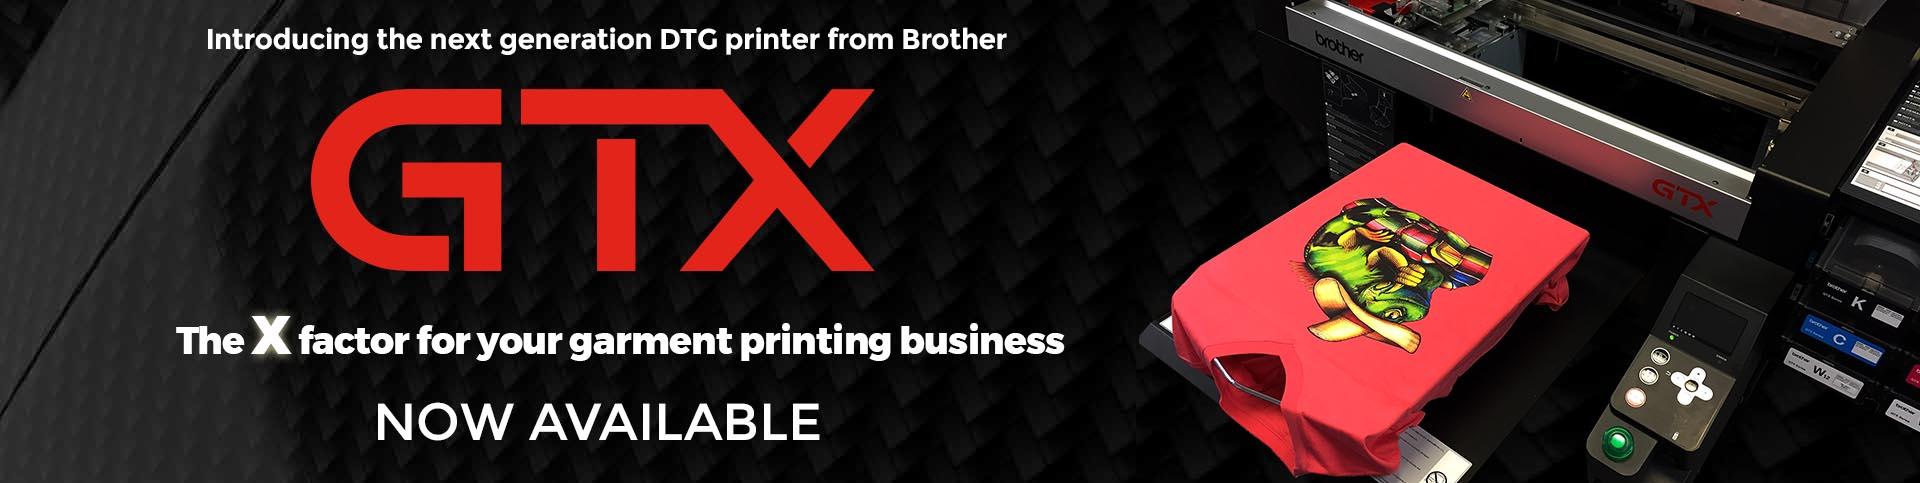 Introducing the Brother GTX DTG Printer